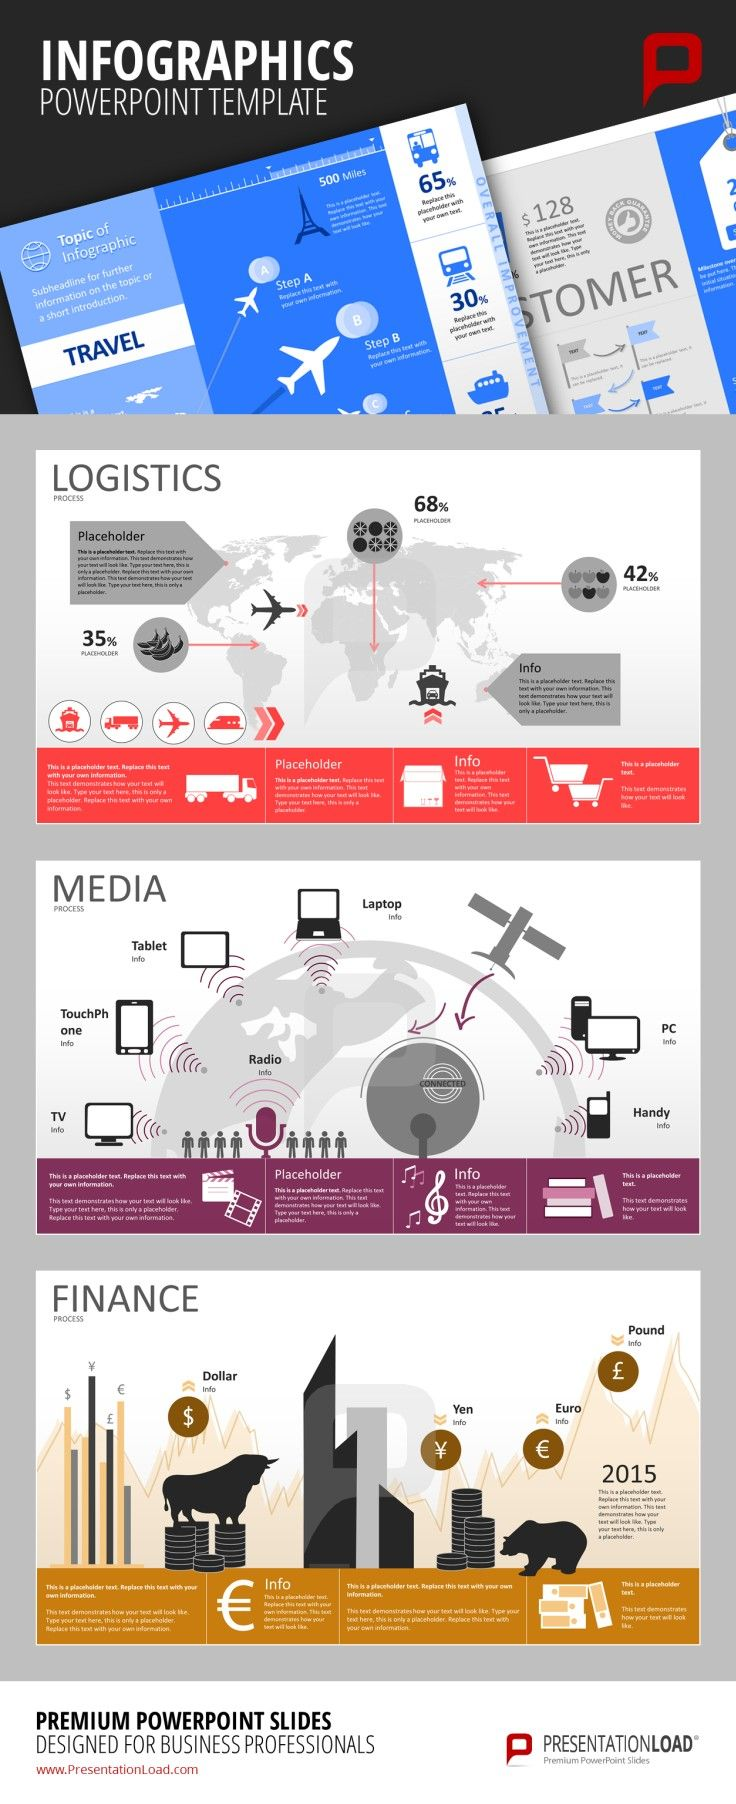 92 best infographics powerpoint templates images on pinterest infographic powerpoint templates create a lucid and structured infographic about your companys worldwide logistics network or toneelgroepblik Gallery